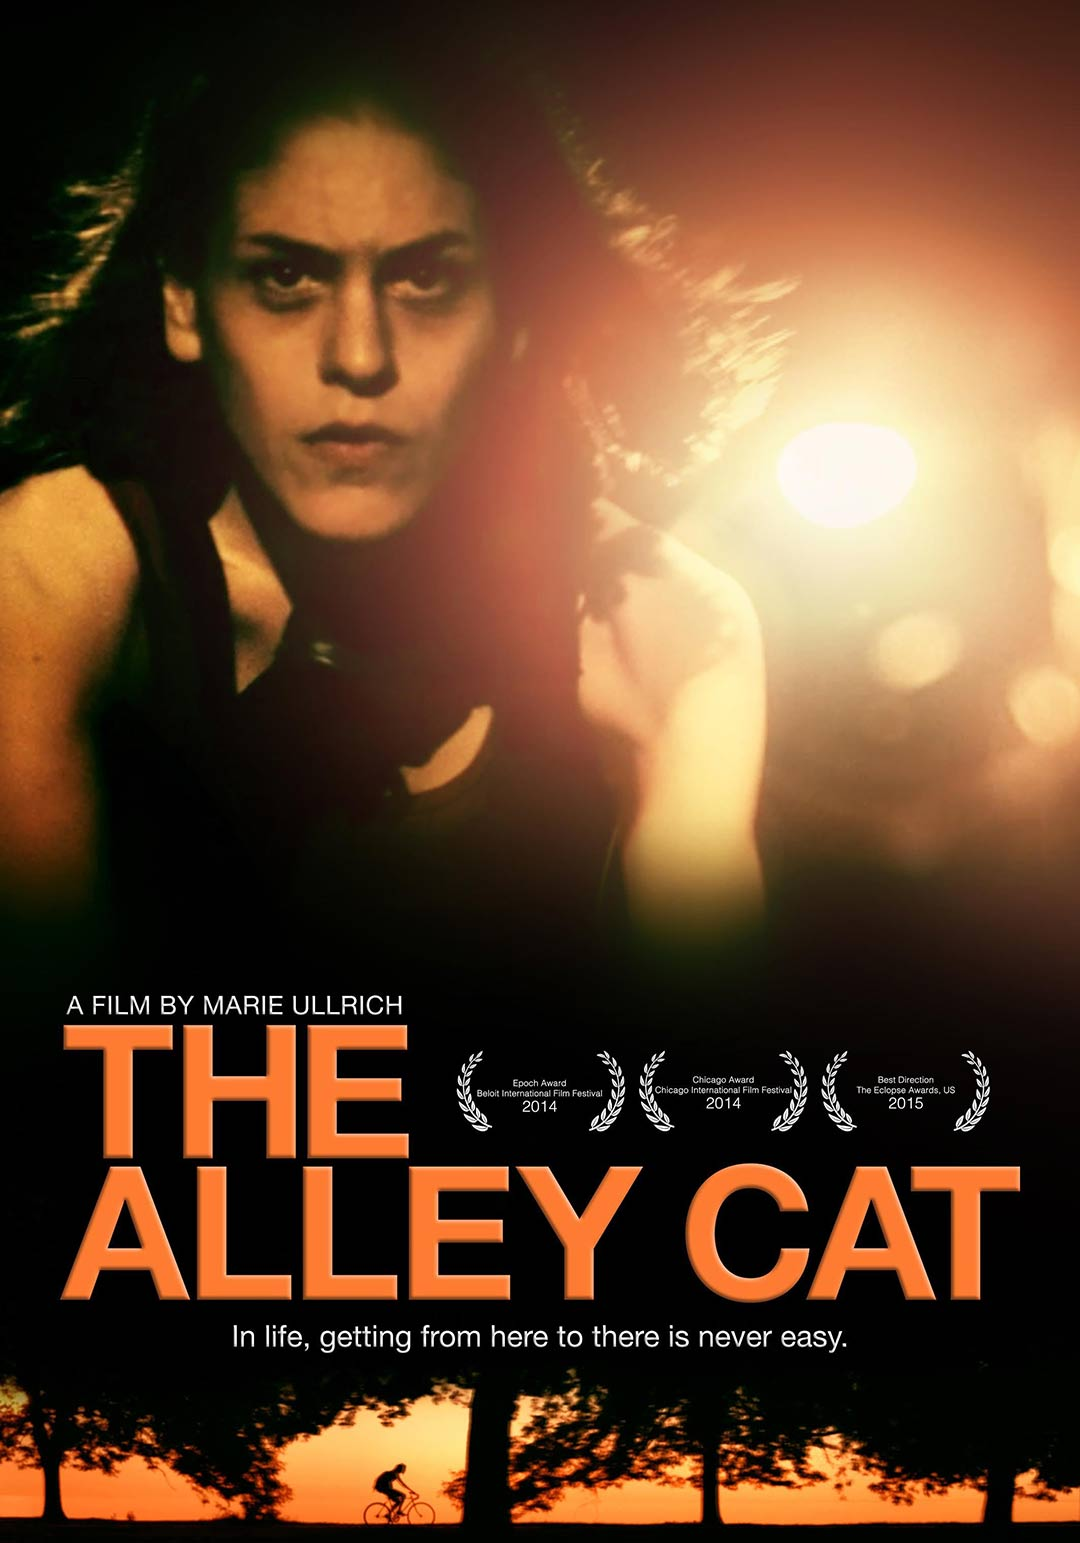 Poster for the film The Alley Cat (2016)